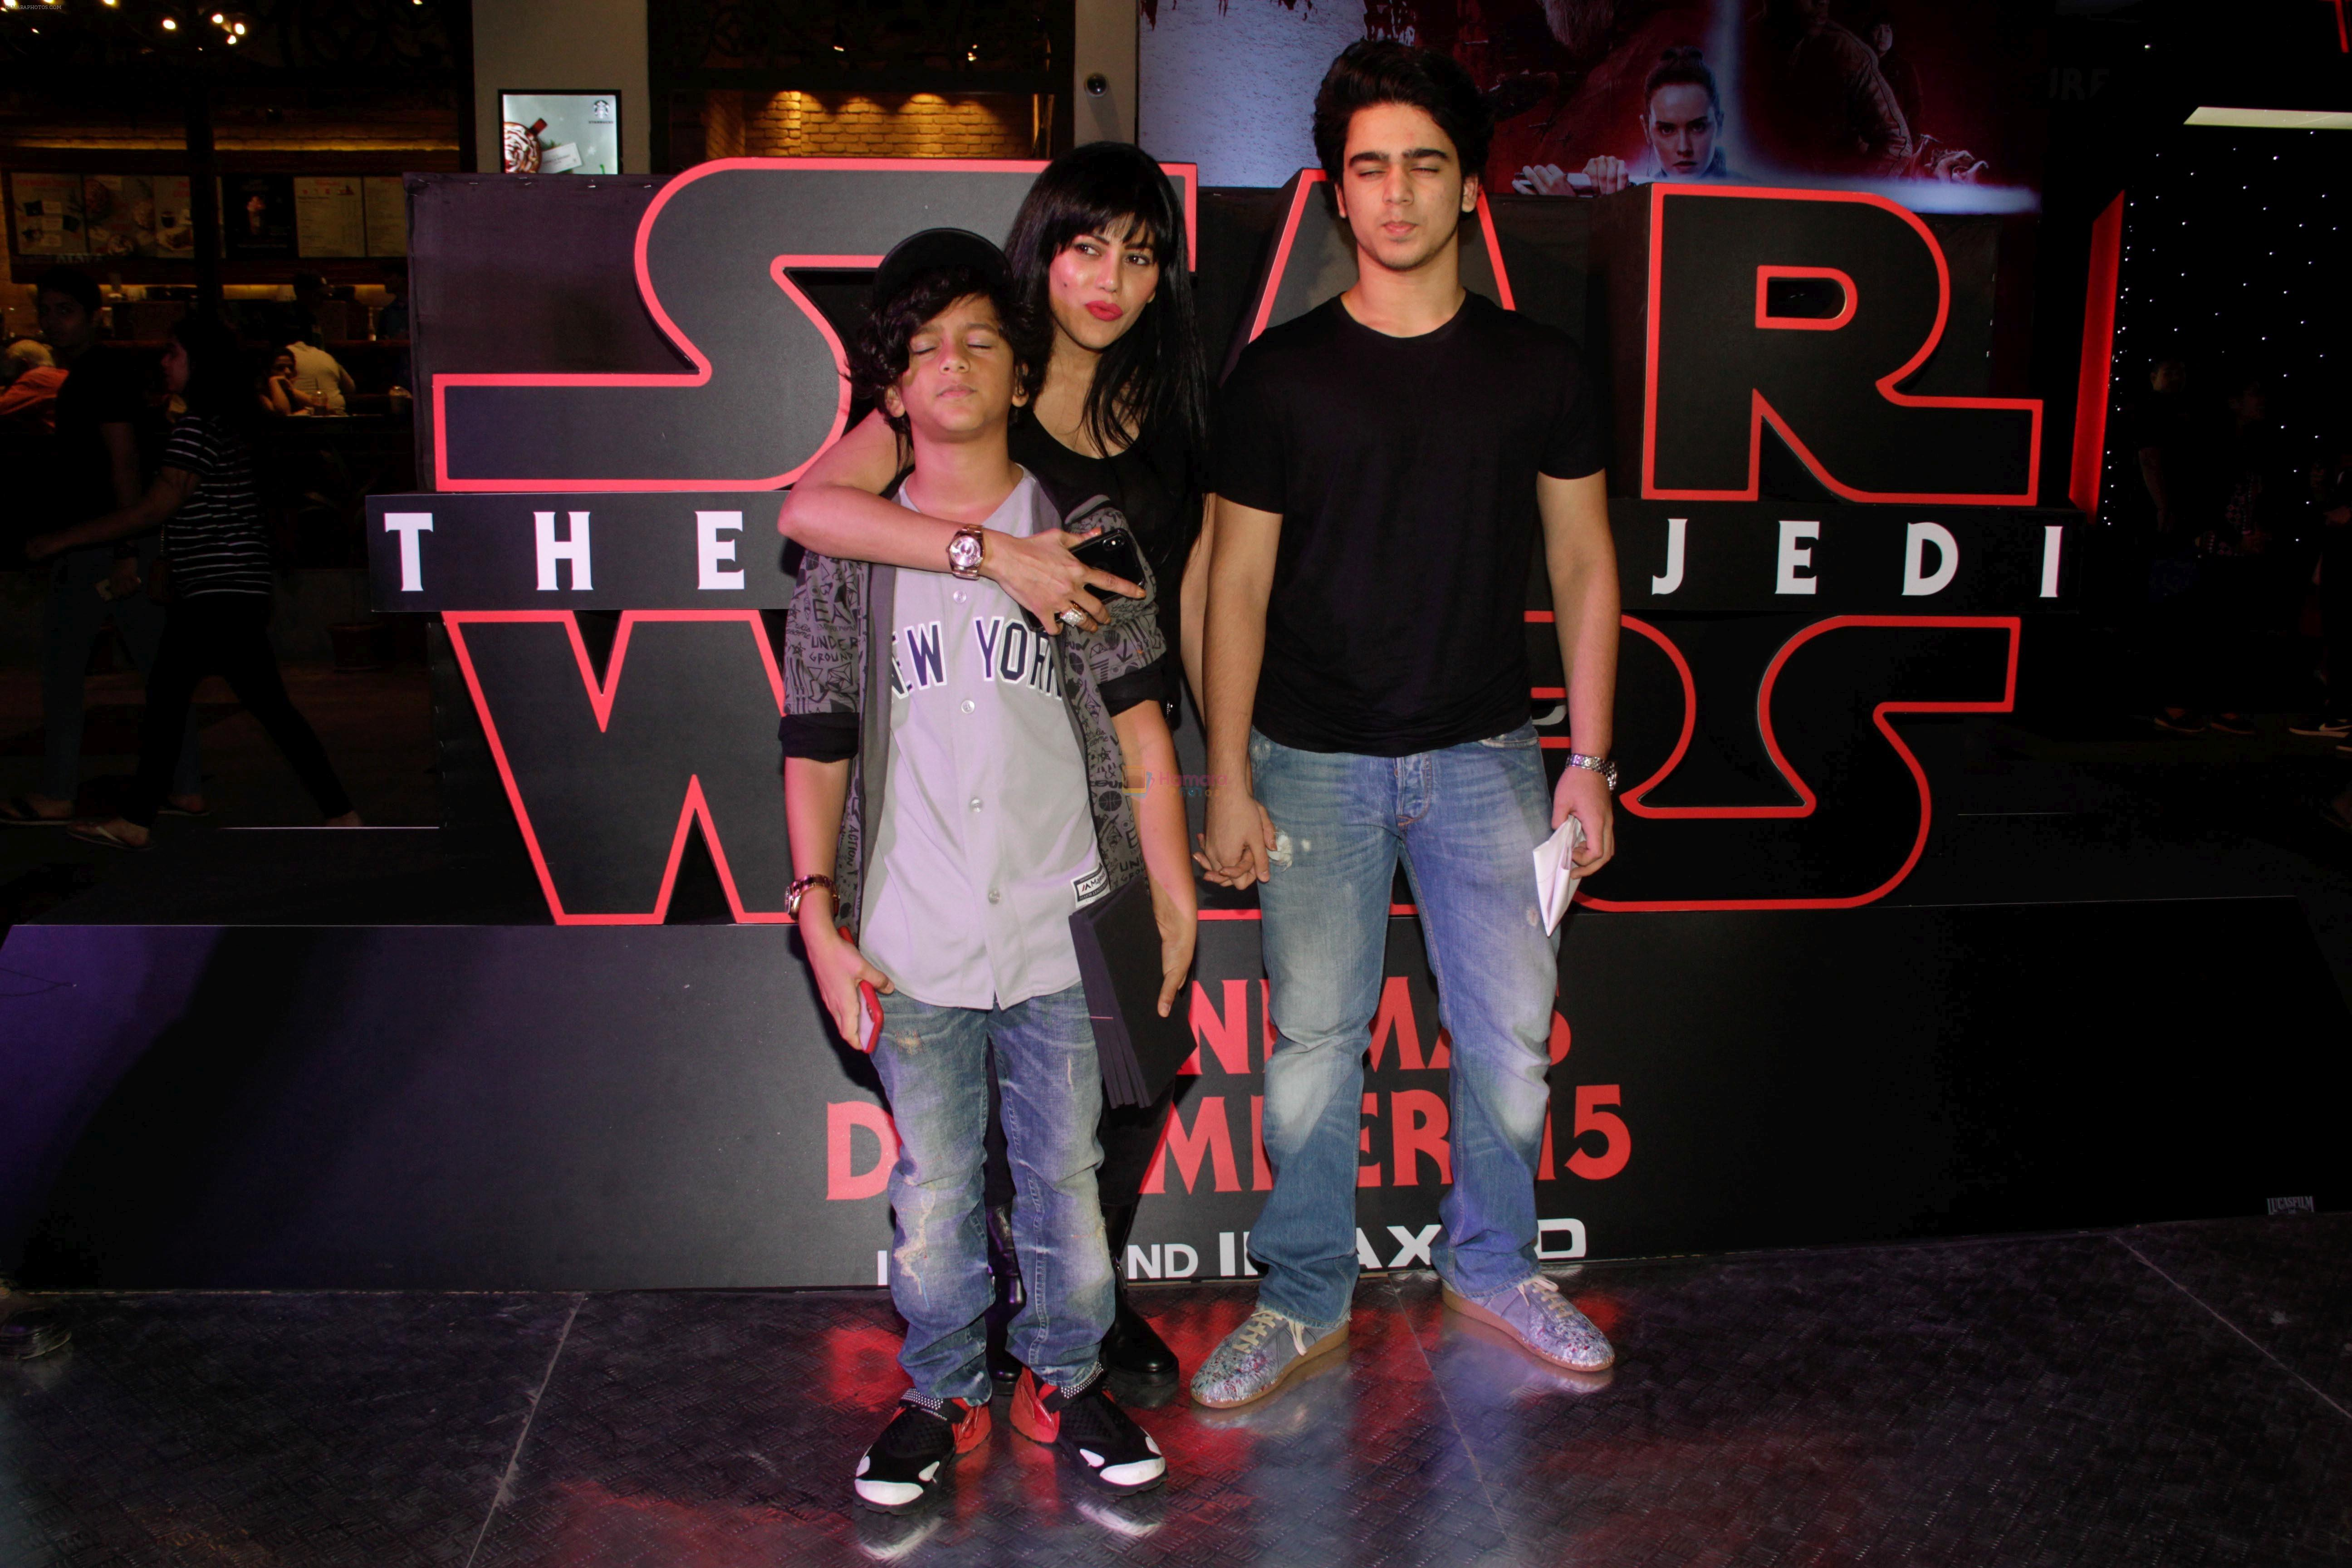 at the Red Carpet Premiere Of 2017's Most Awaited Hollywood Film Disney Star War on 13th Dec 2017